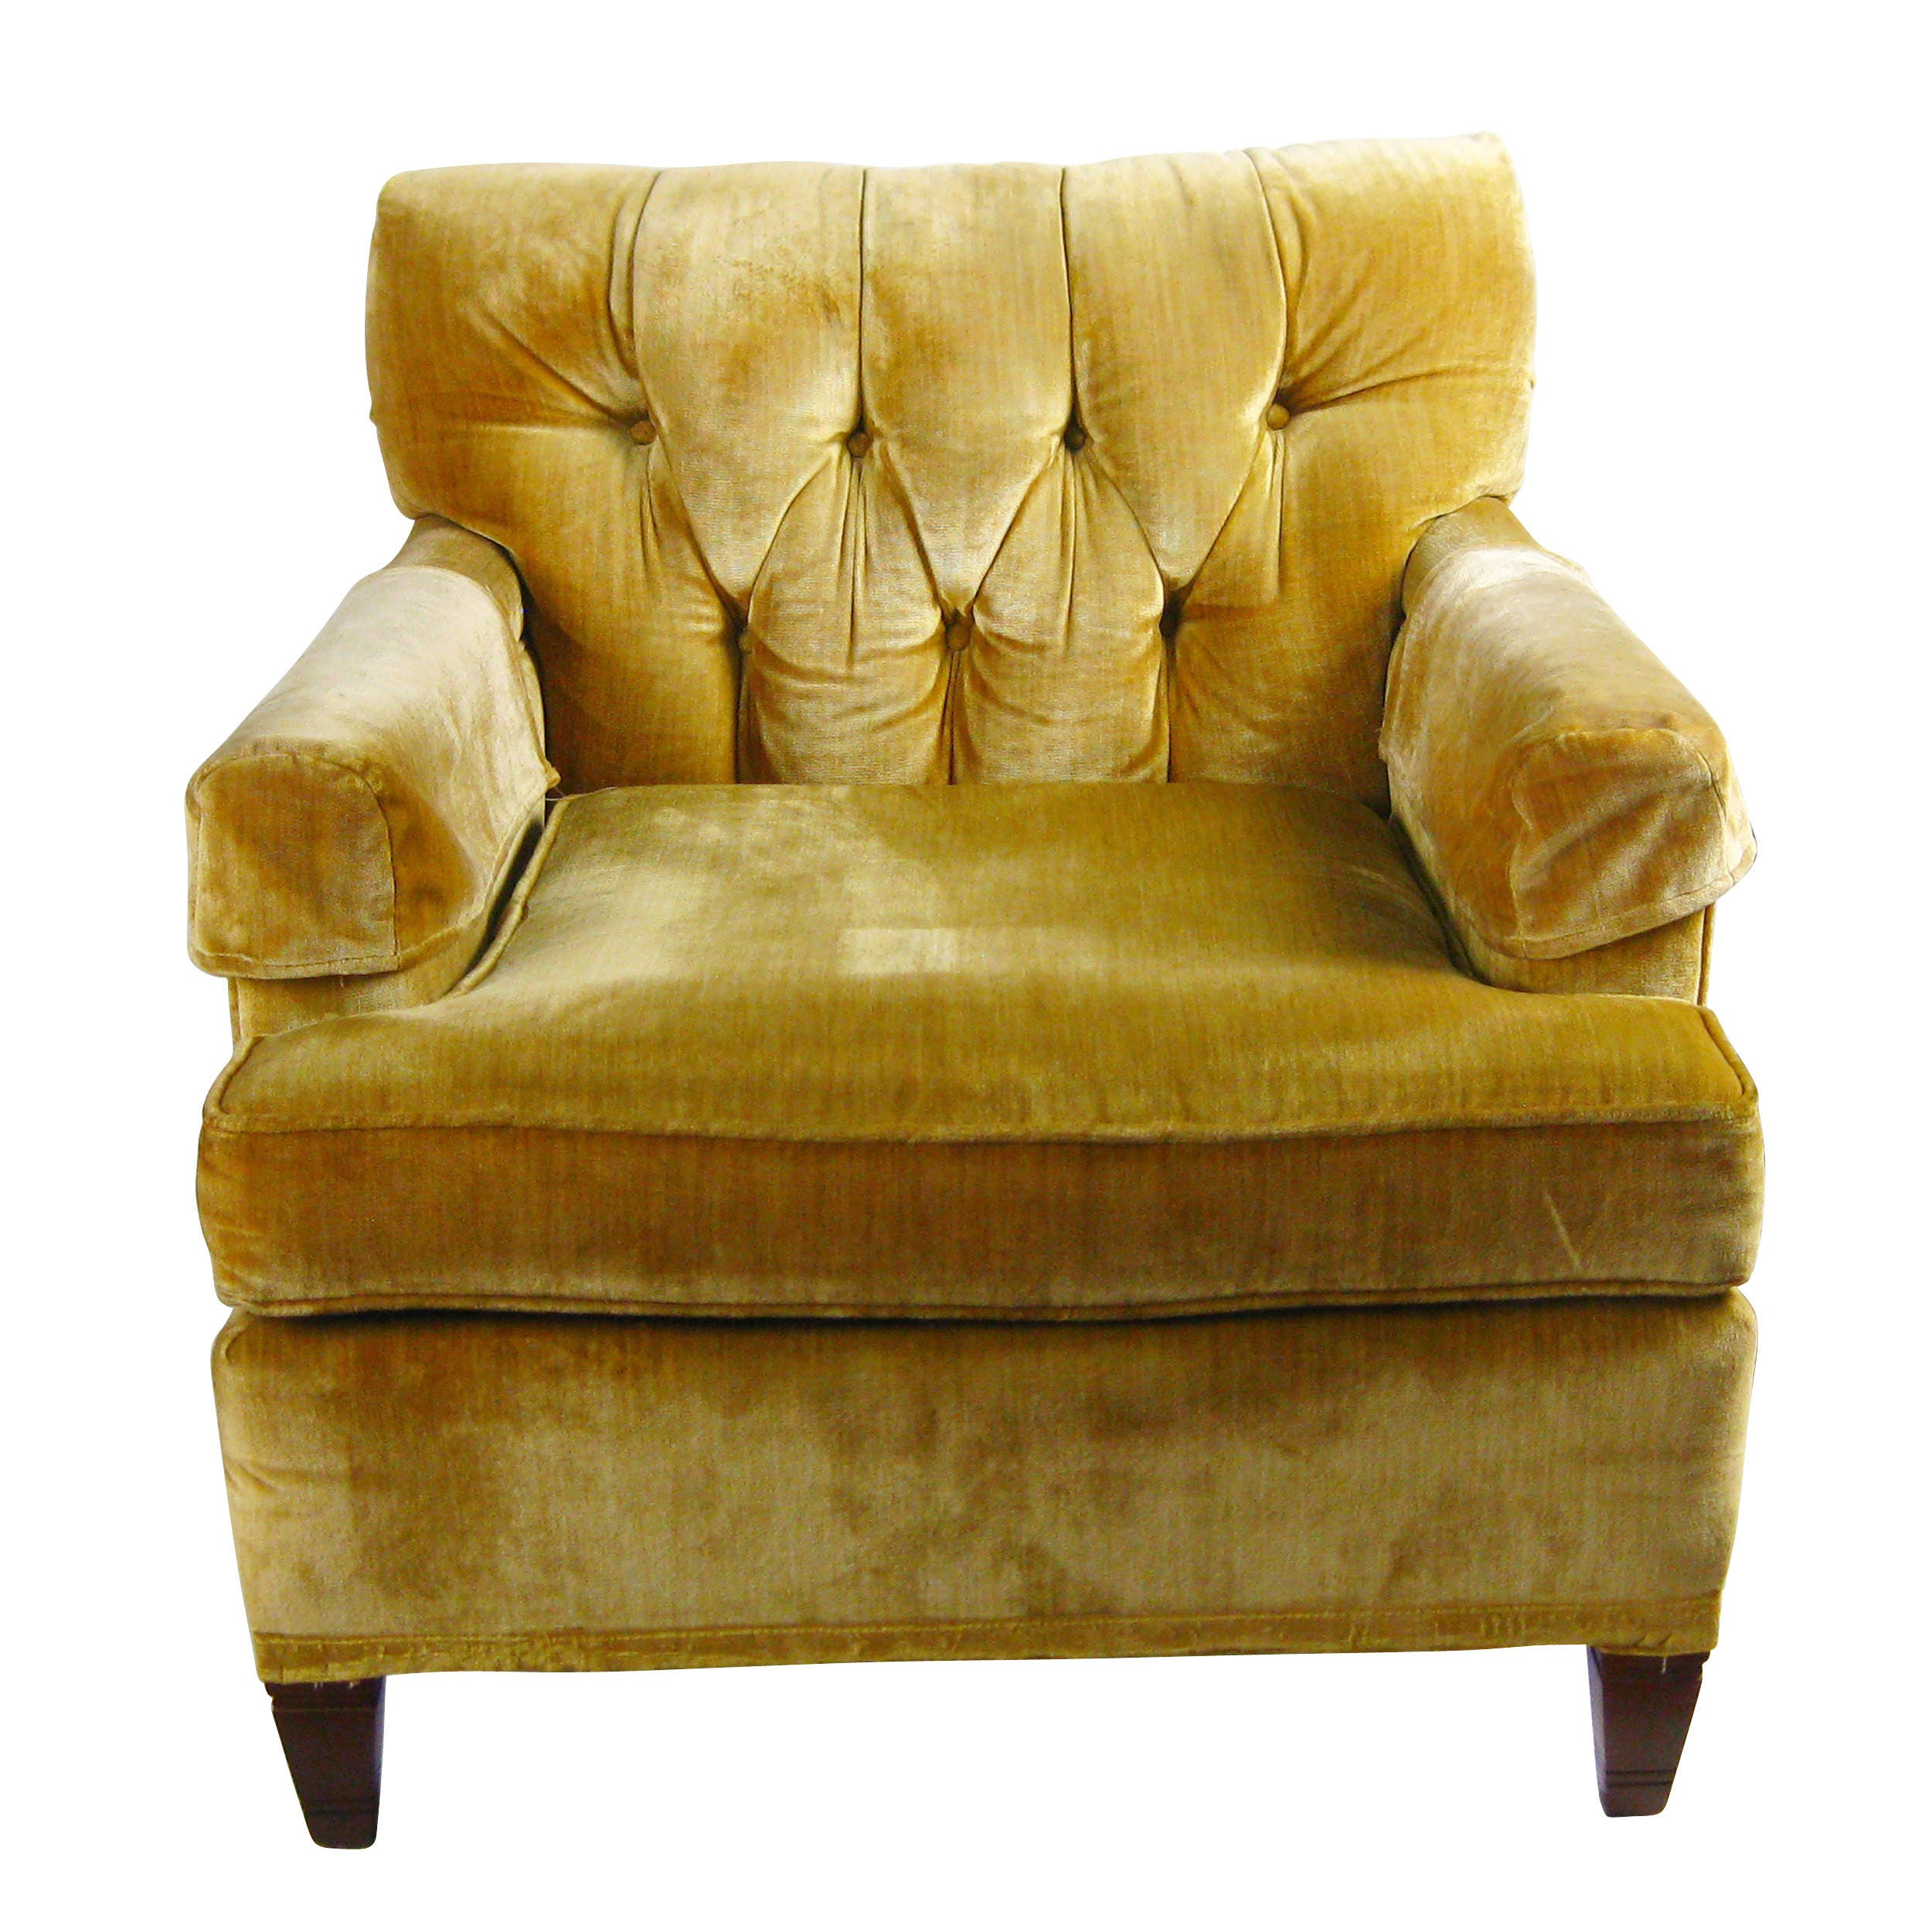 Company Furniture: Vintage North Hickory Furniture Company Yellow Gold Tufted